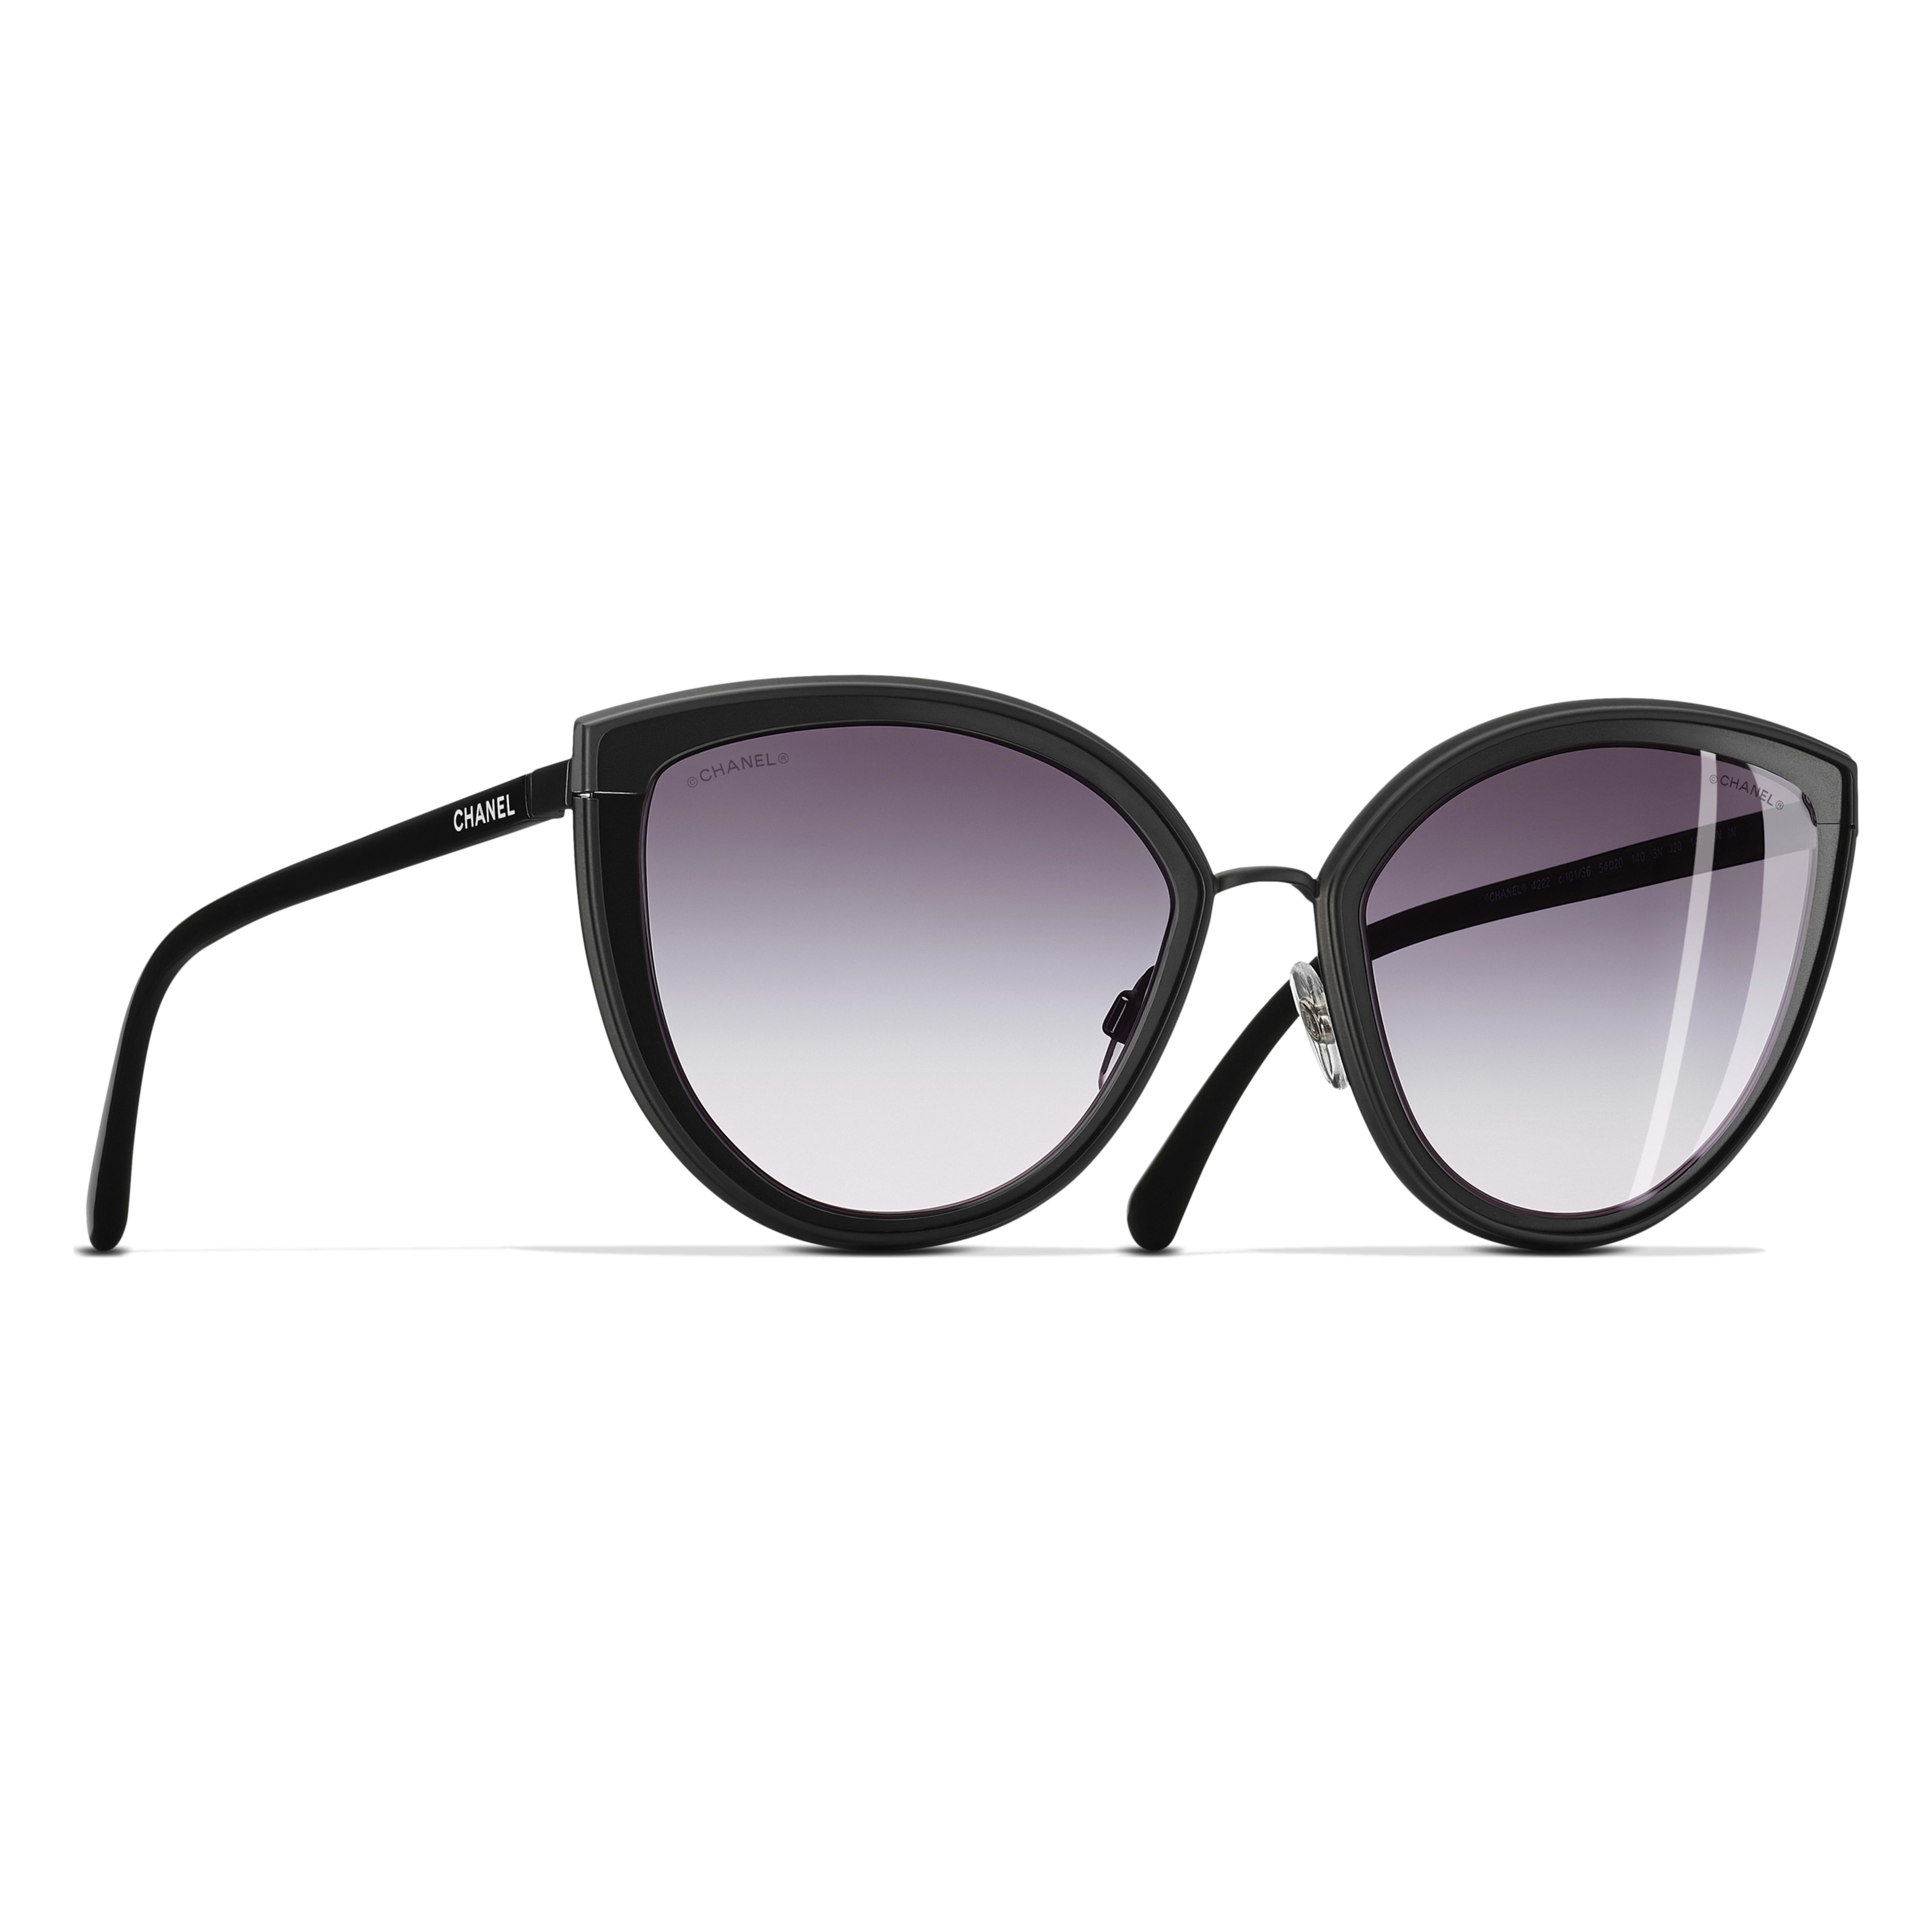 ab6585c32a09 Chanel Sunglasses Cat Eye Black - The Best Picture Glasses In 2018